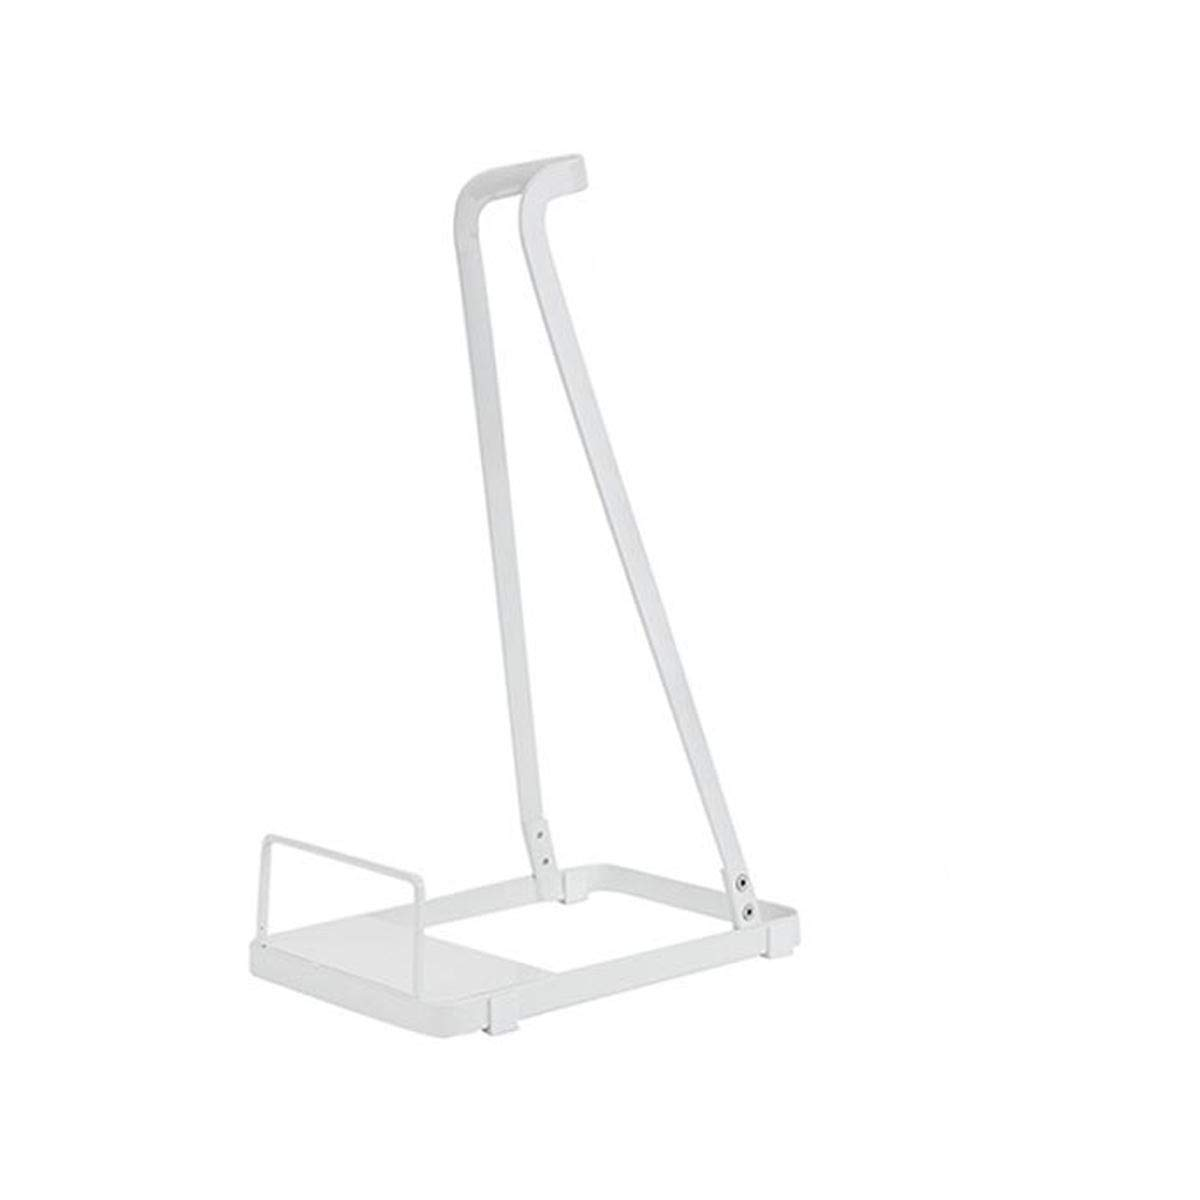 Organizers Vacuum Stand for Dyson,Steel Storage Stand,Home Steel Storage Stand Suit for Stick Vacuums Handheld Vacuums and Canister Vacuums (White)